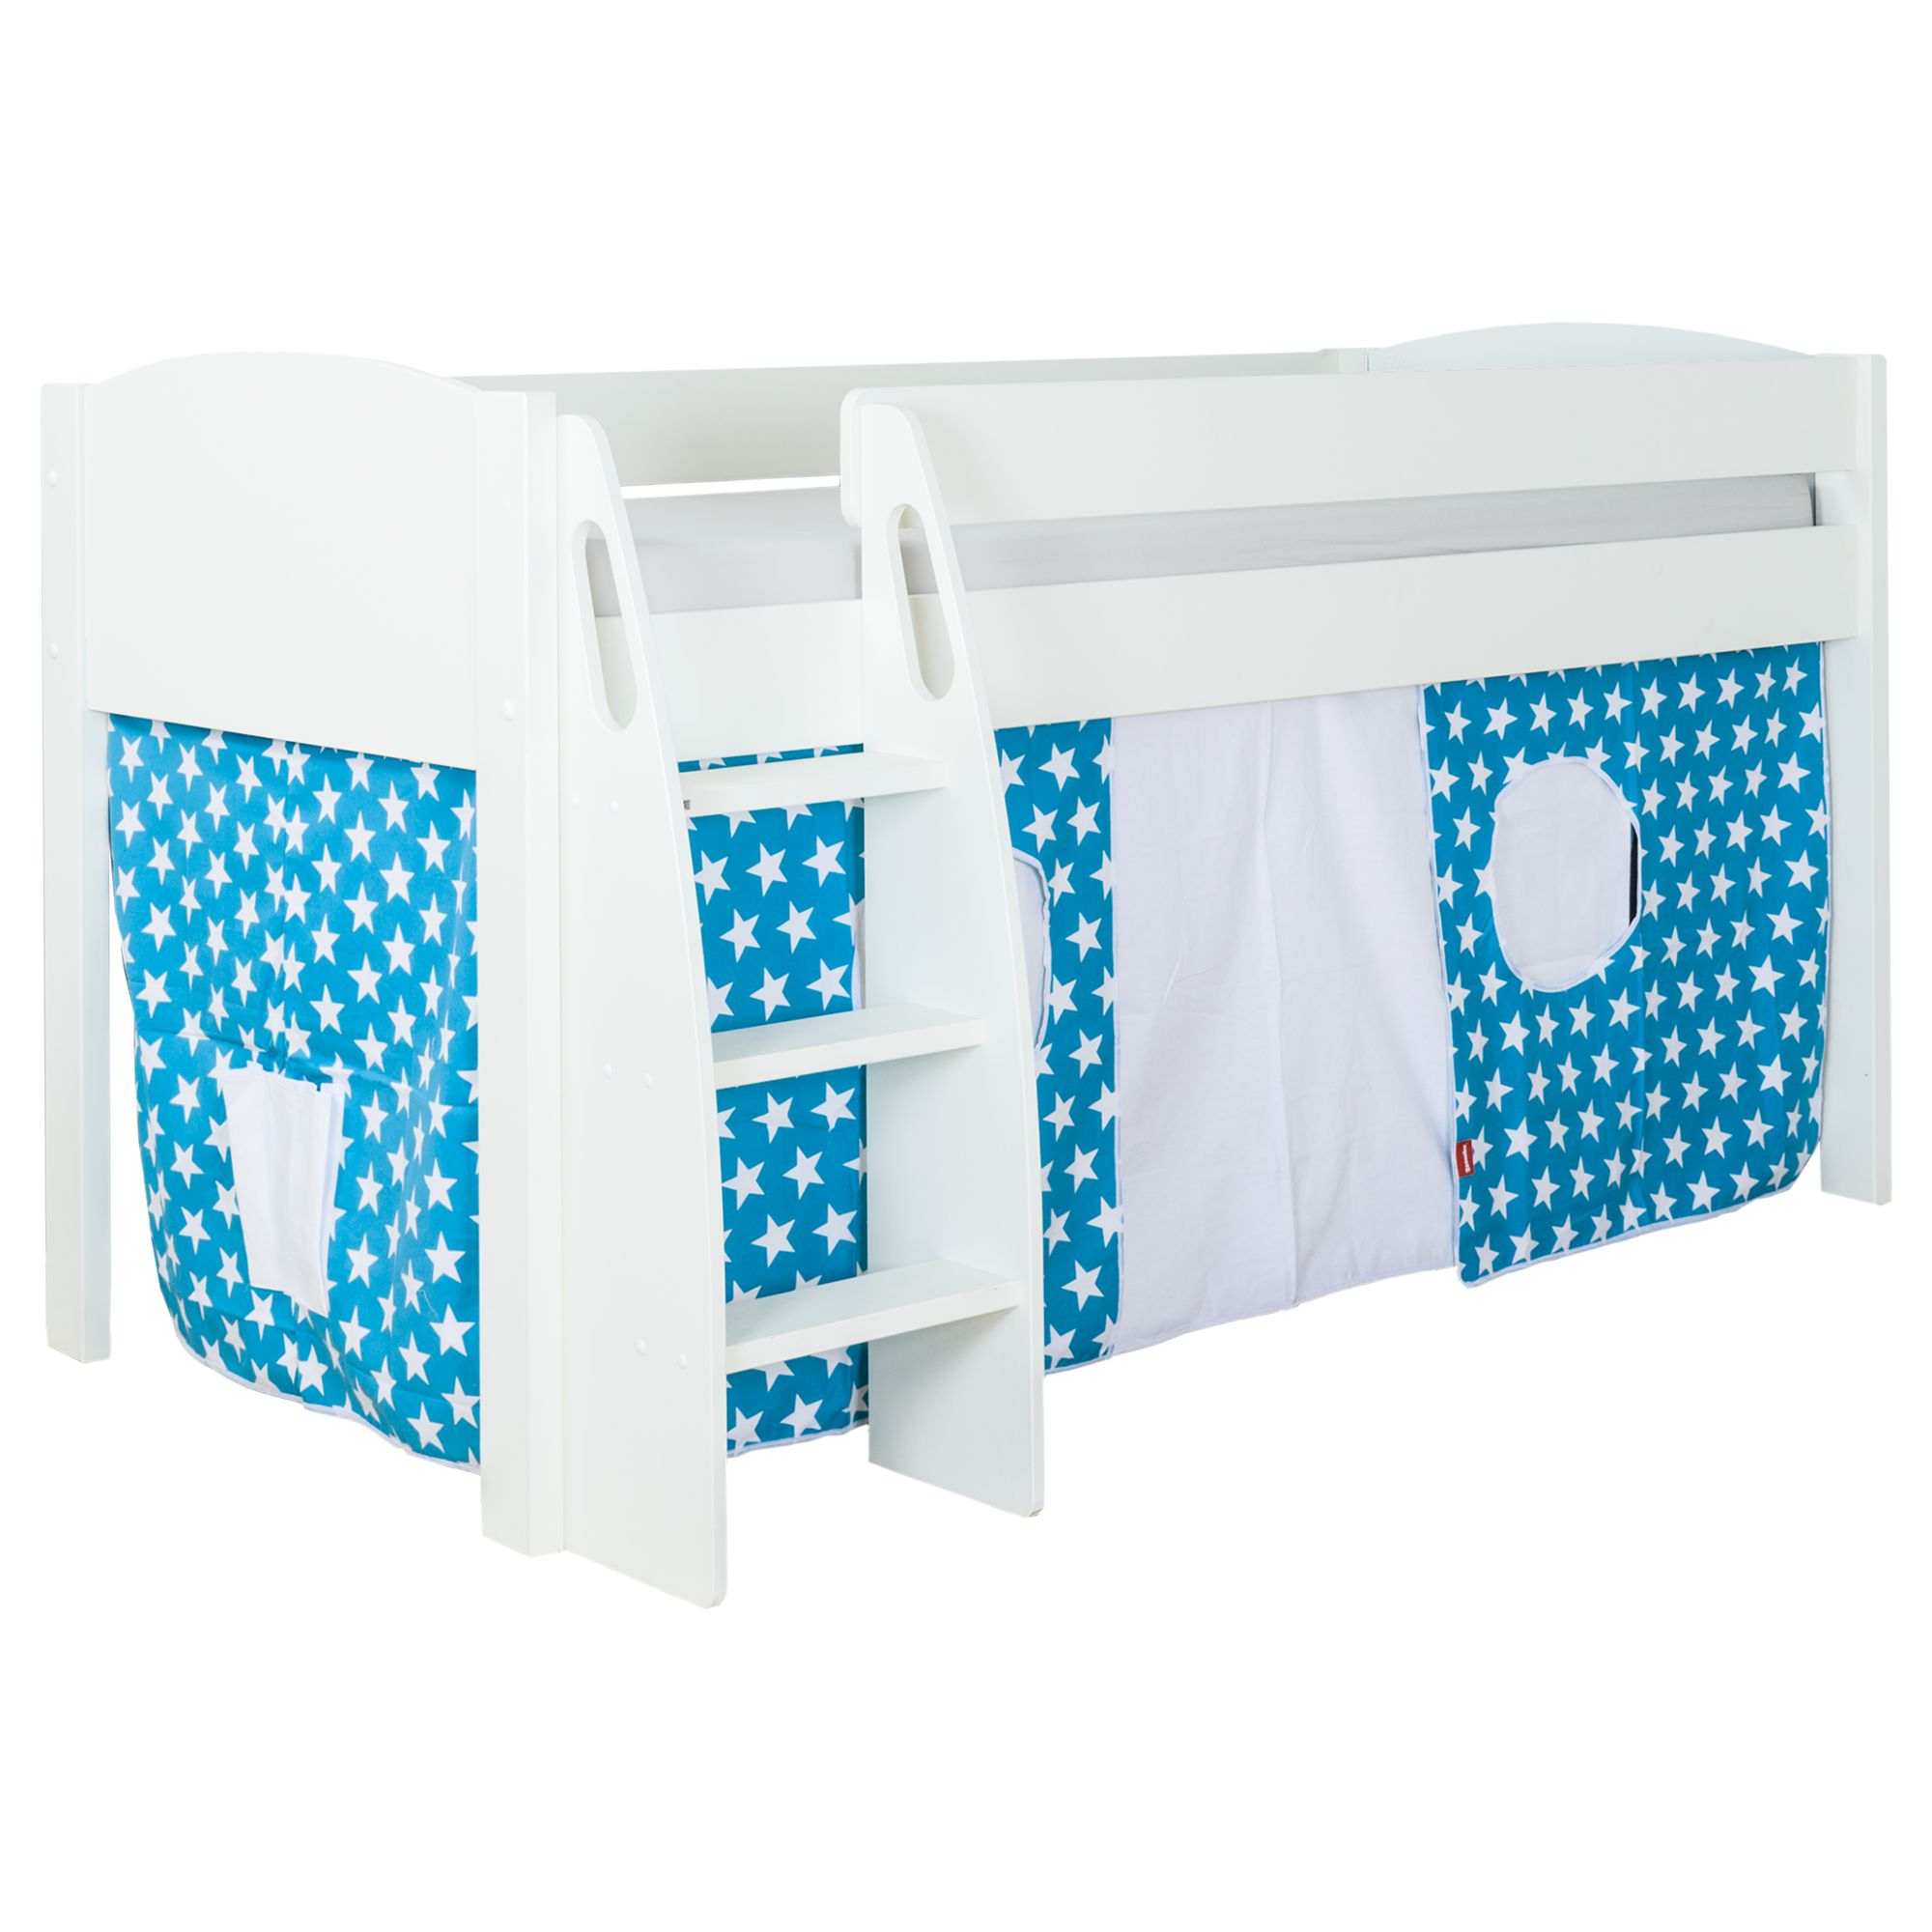 Picture of: Stompa Uno S Plus Mid Sleeper Bed With White Headboard And Star Print Tent At John Lewis Partners